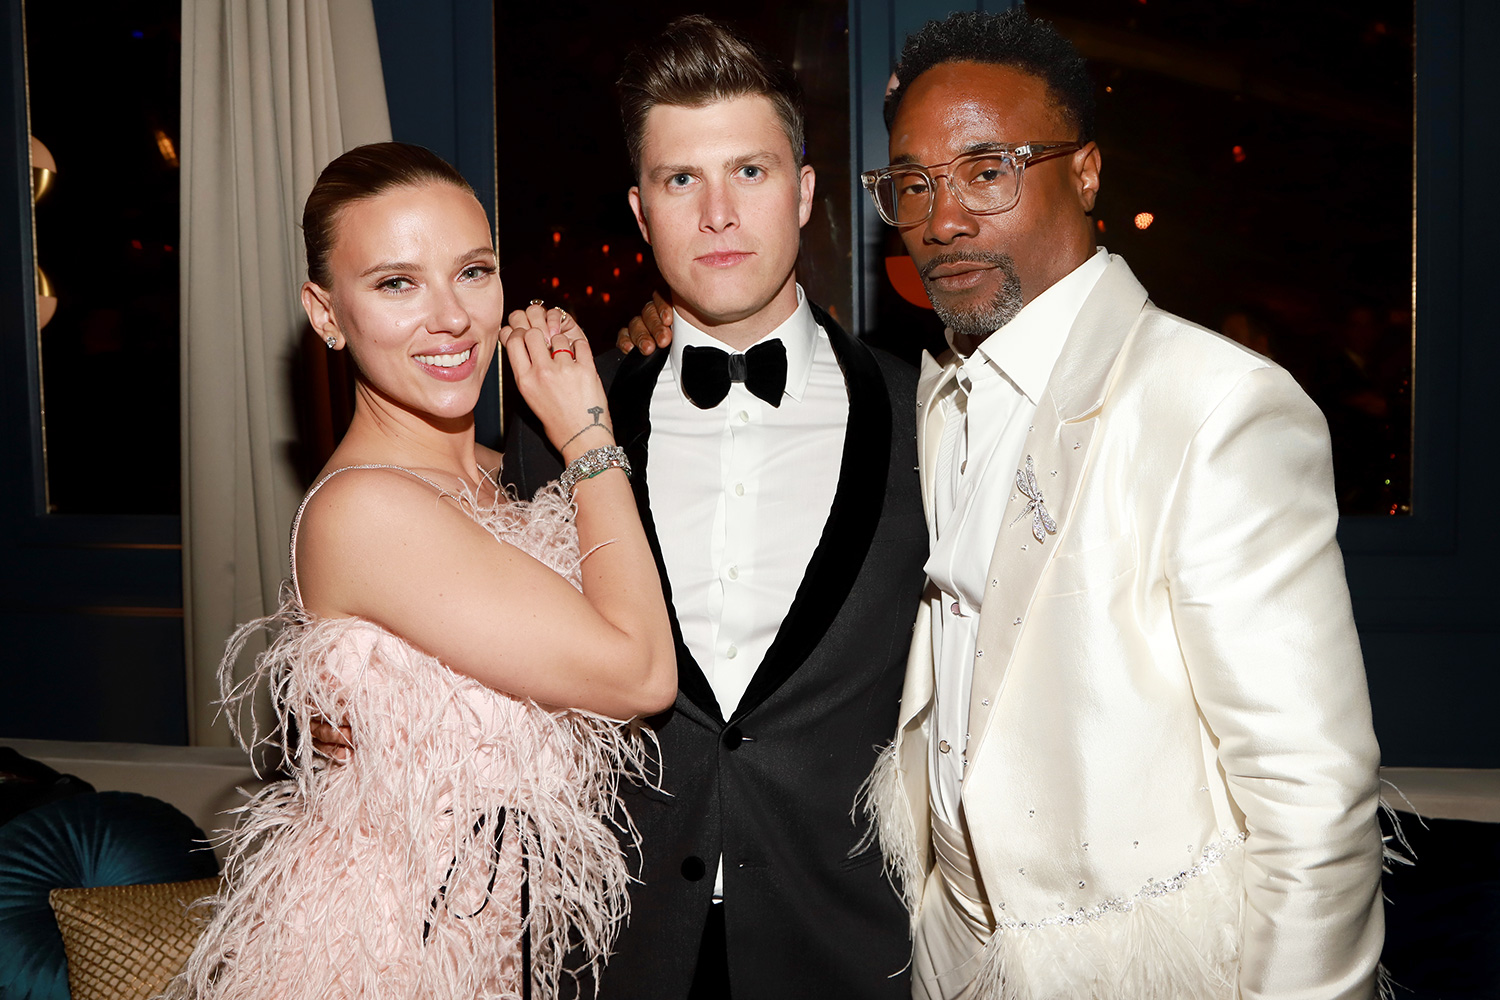 Scarlett Johansson, Colin Jost and Billy Porter